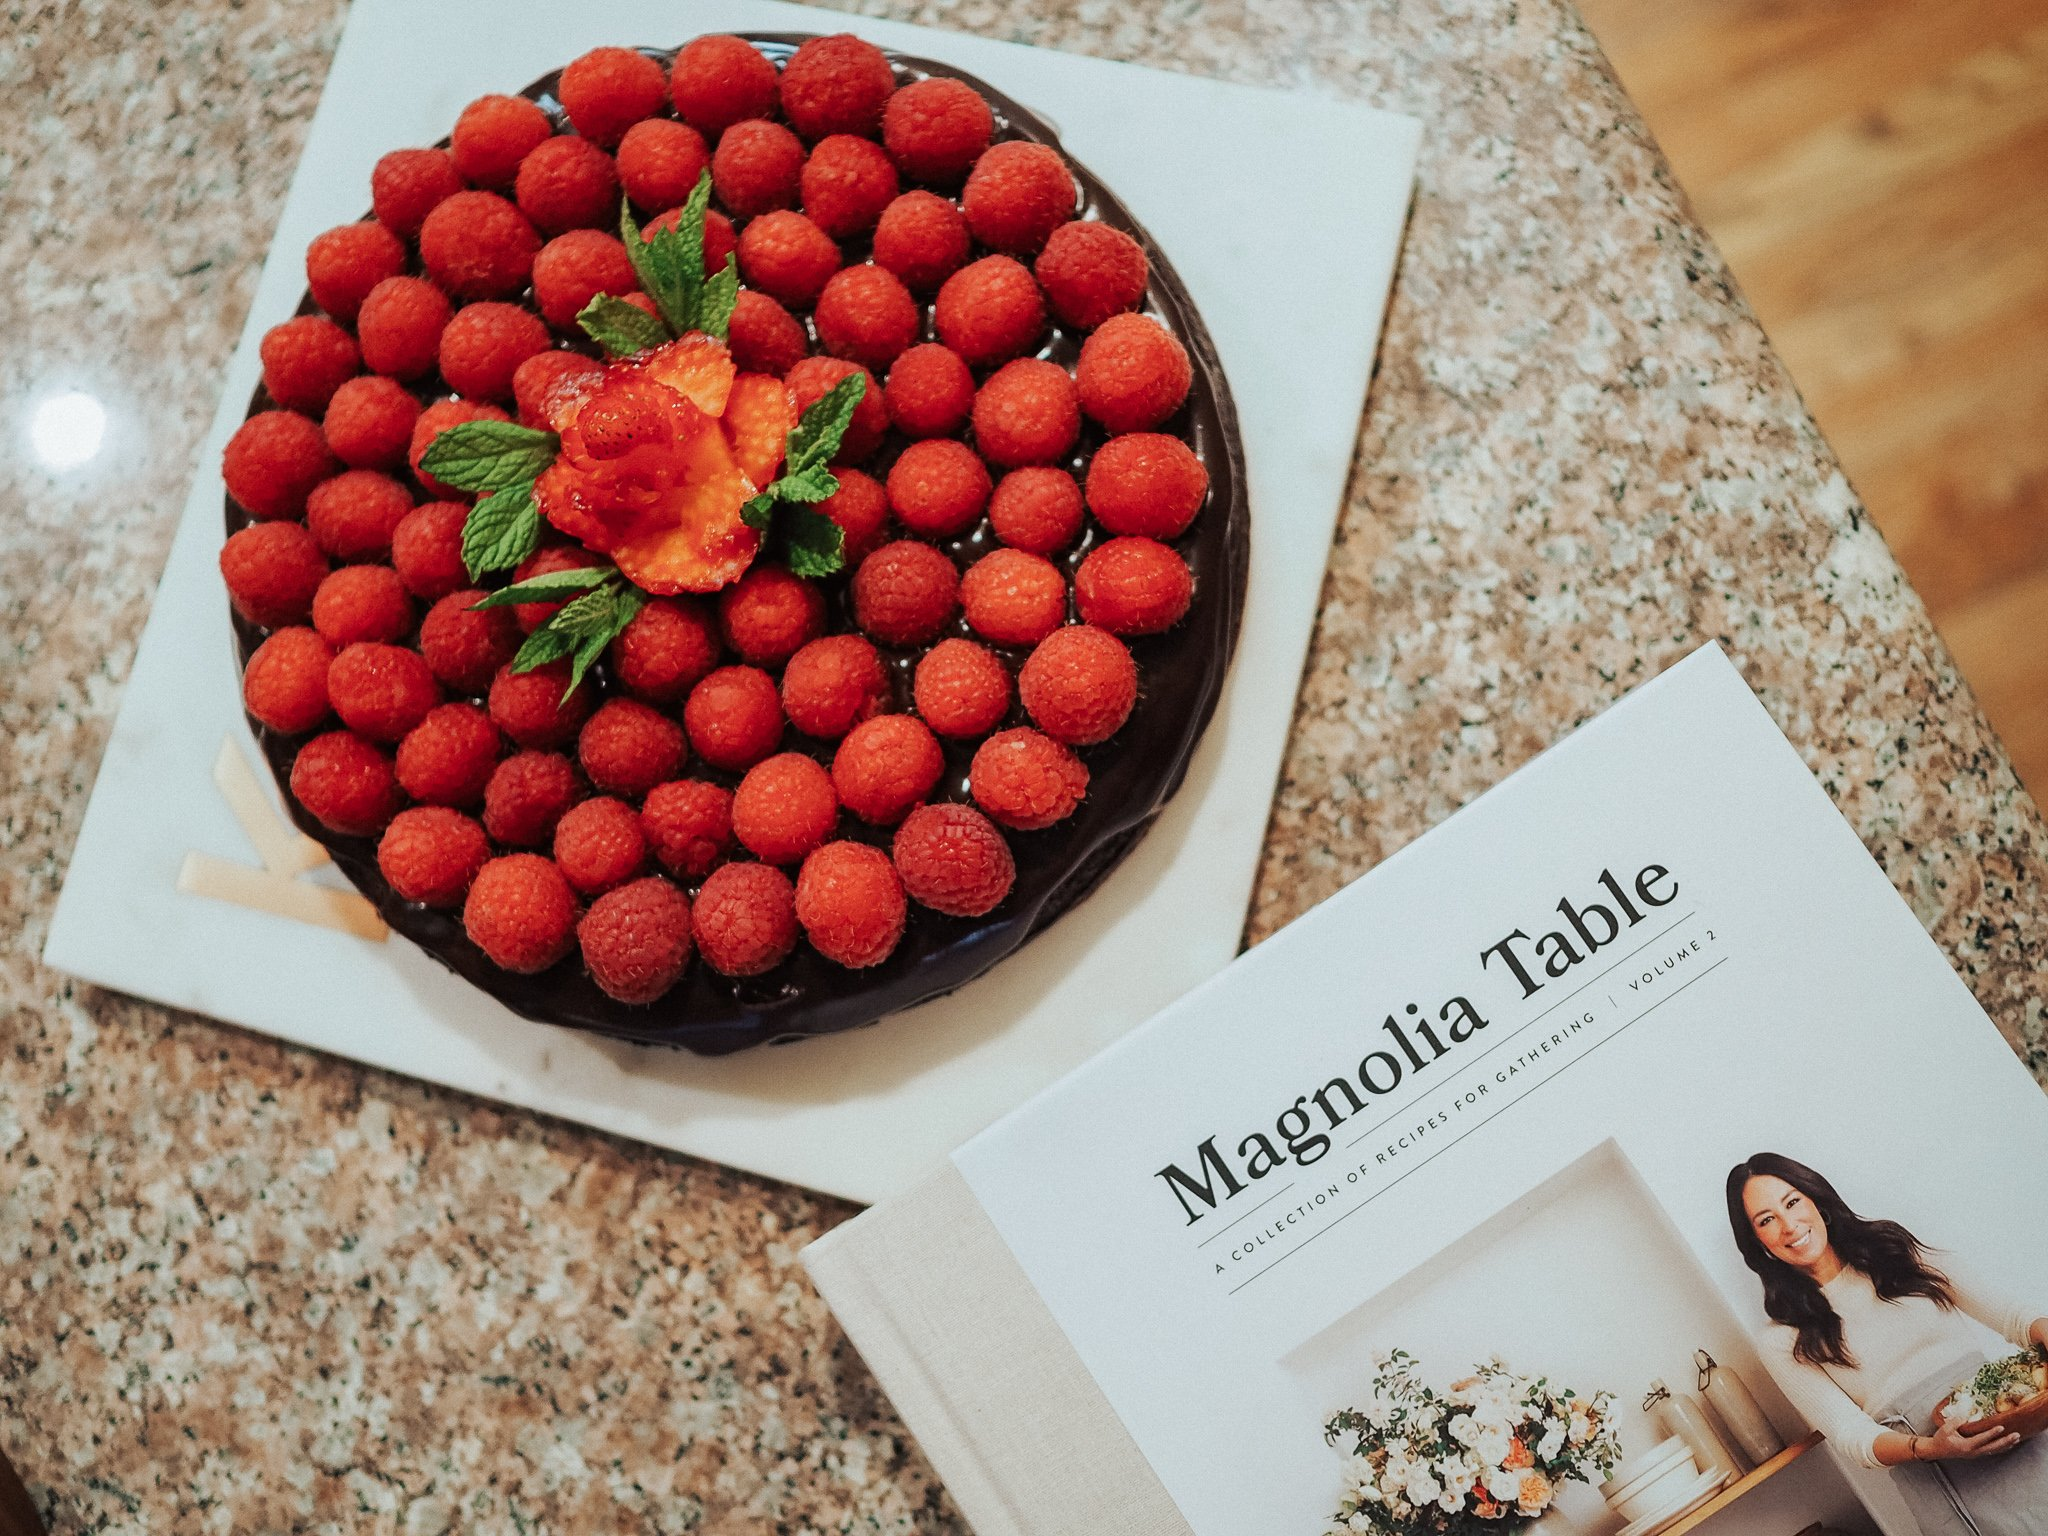 Lifestyle blogger Kelsey from Blondes & Bagels gives a Magnolia Table Volume 2 review of the new Magnolia Table cookbook. Is Magnolia Volume 2 worth it?